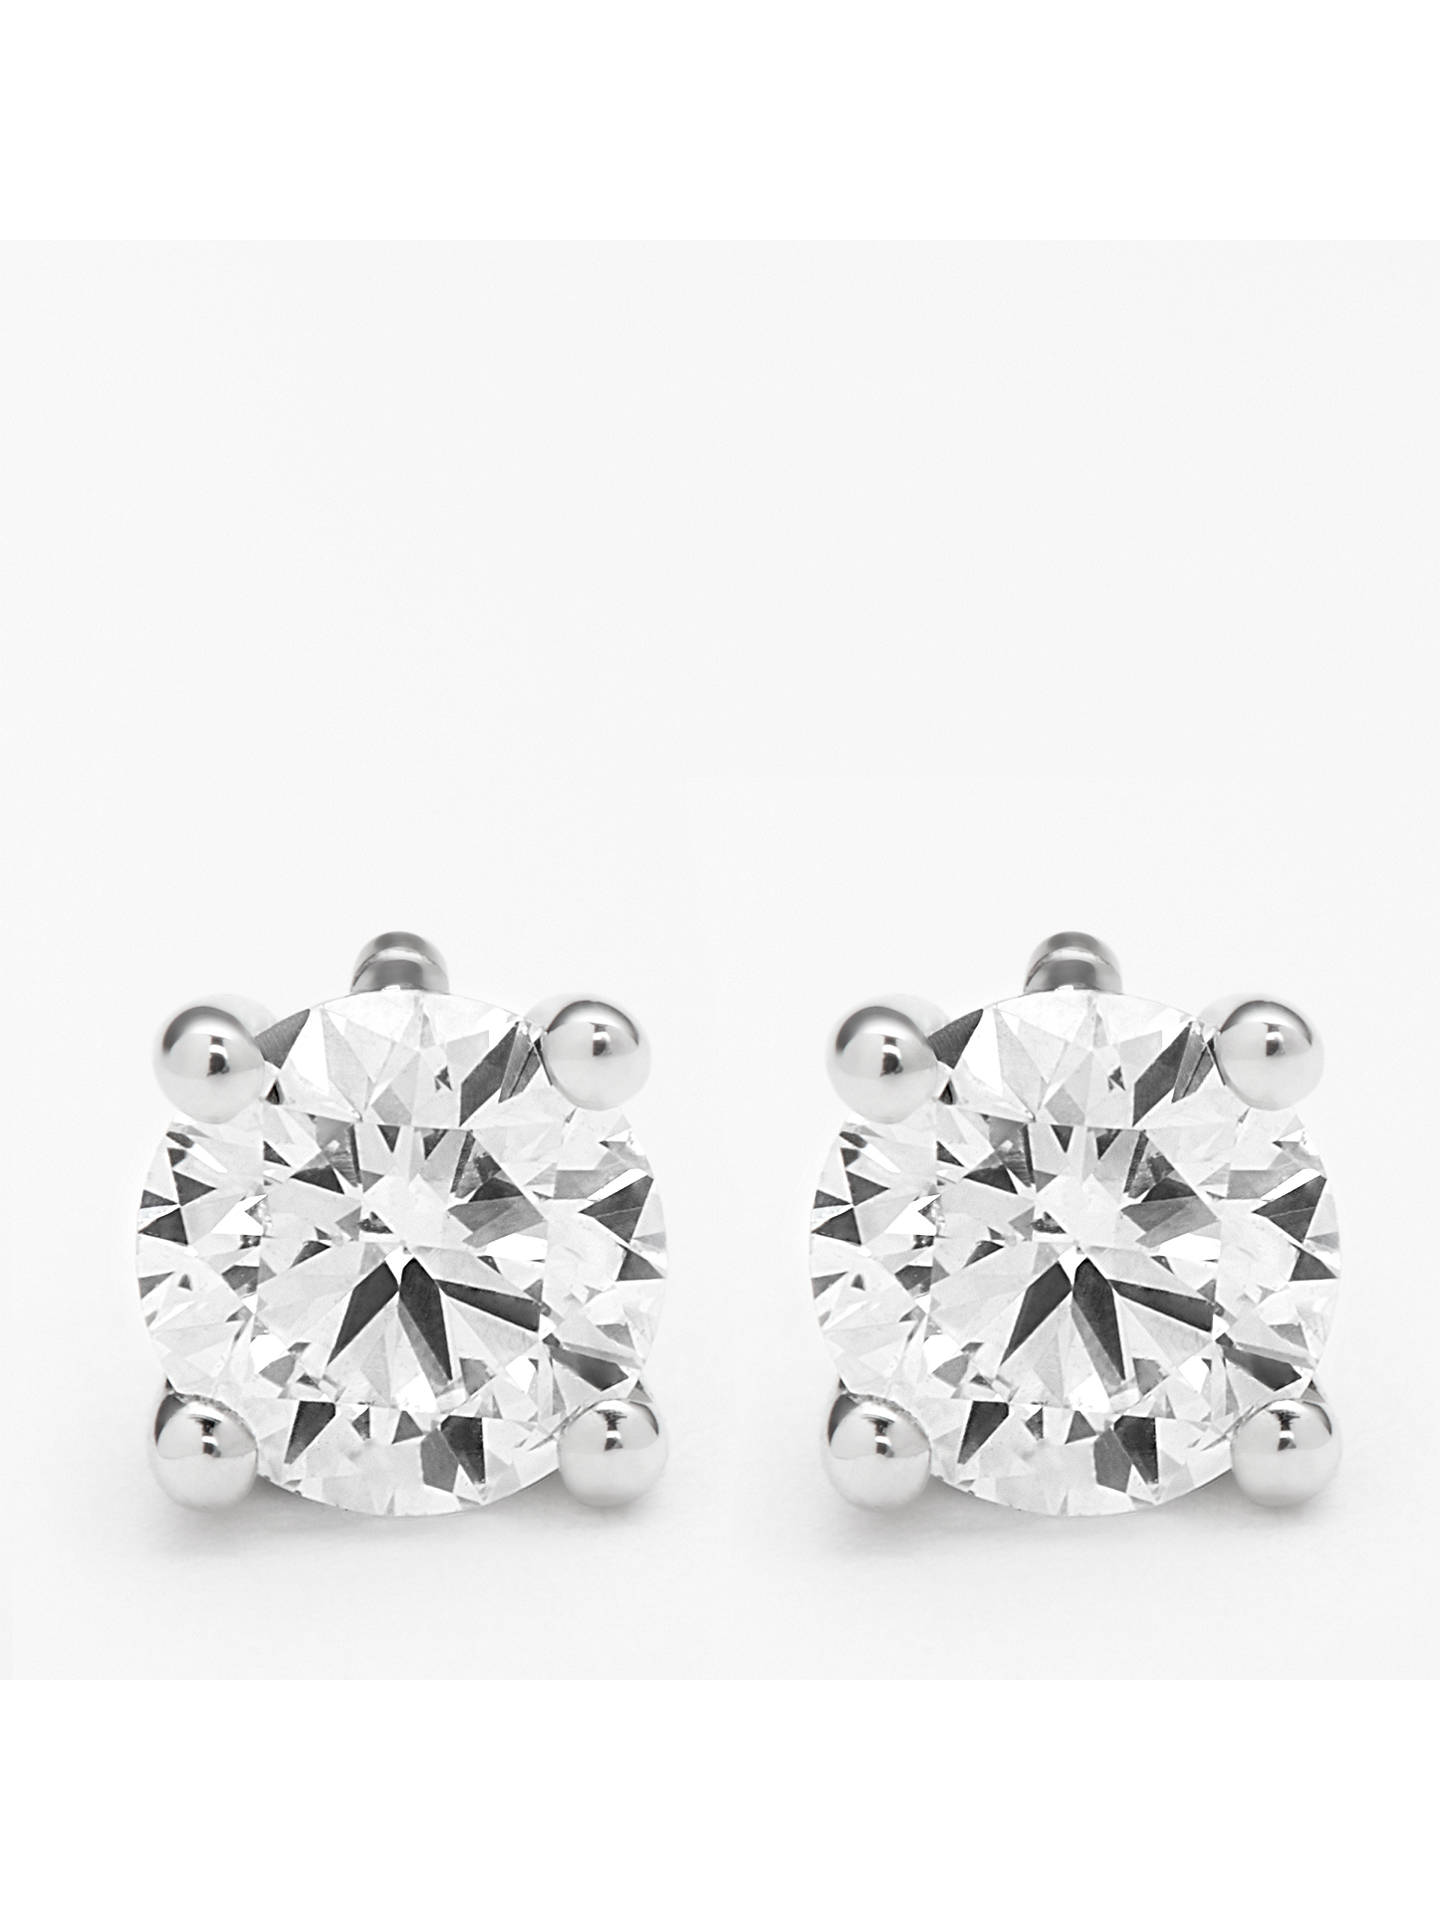 BuyMogul 18ct White Gold Round Brilliant Solitaire Diamond Stud Earrings, 0.5ct Online at johnlewis.com